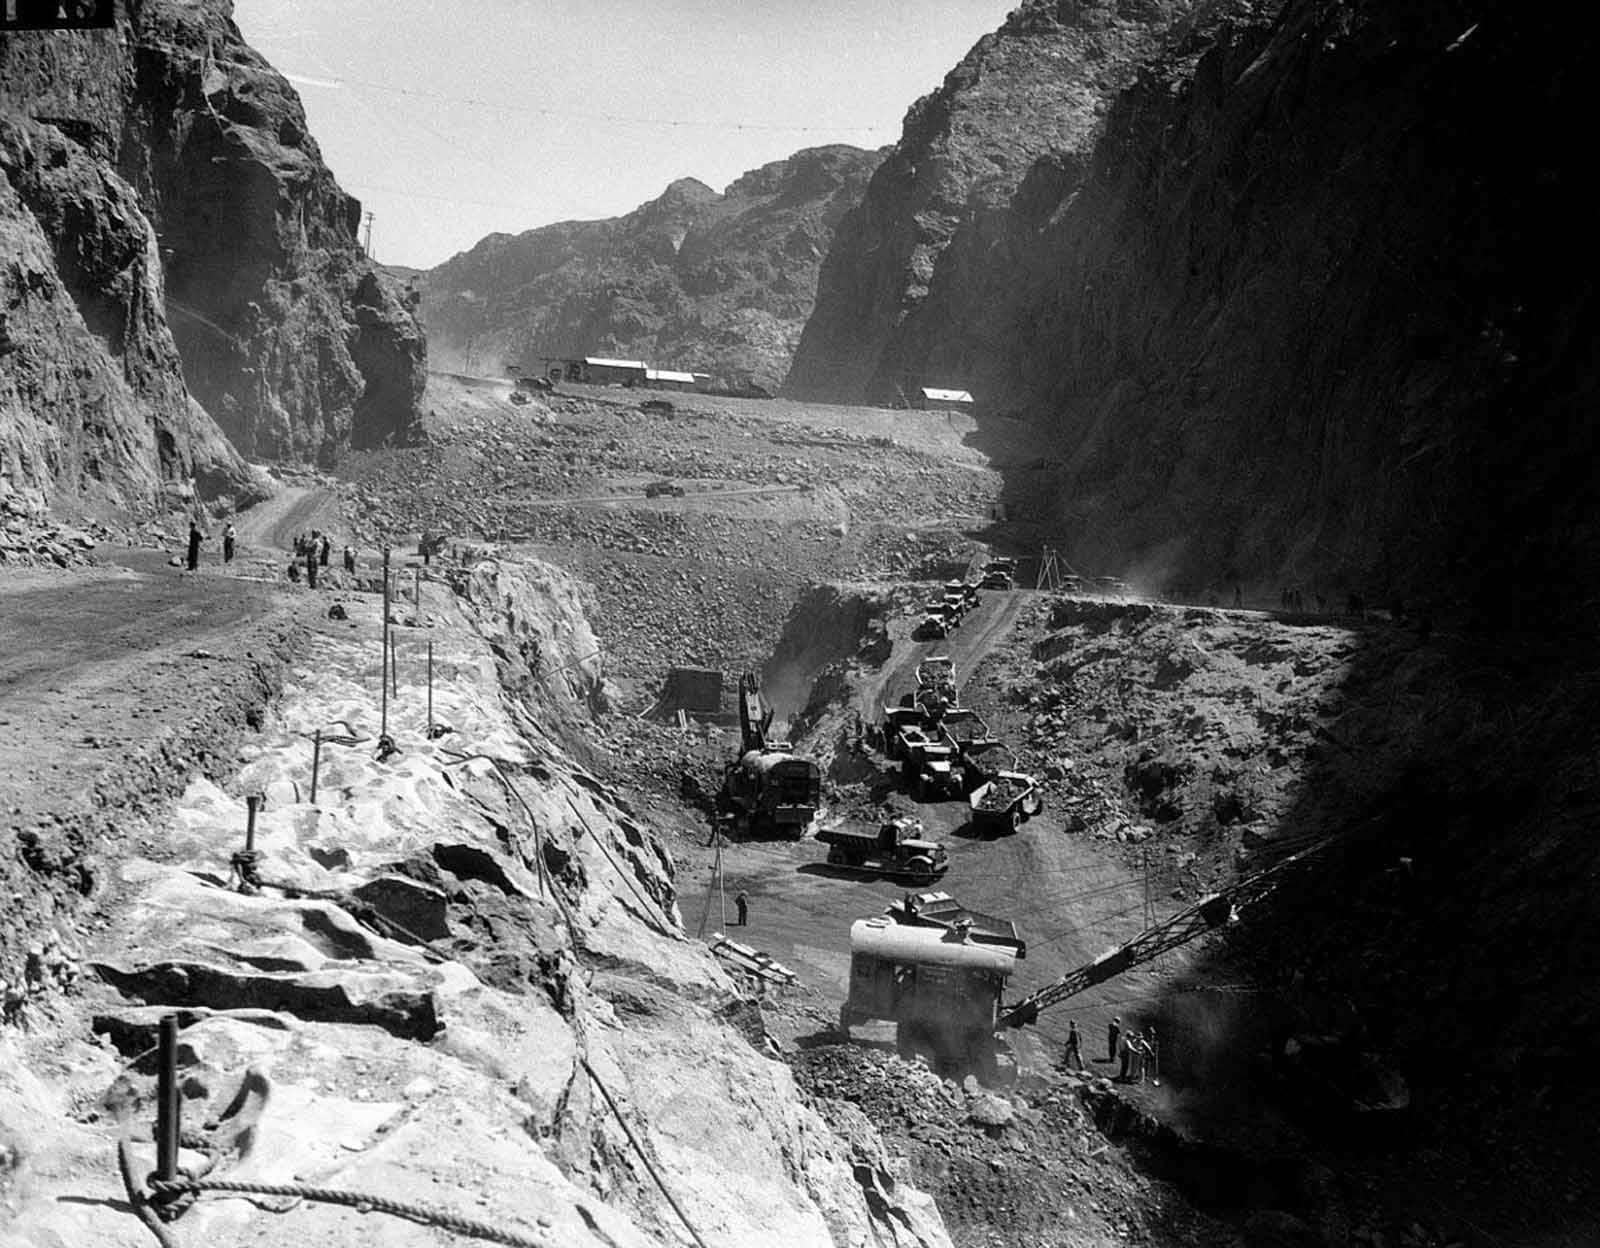 The cleared, underlying rock foundation of the dam site was reinforced with grout, called a grout curtain. Holes were driven into the walls and base of the canyon, as deep as 150 feet (46 m) into the rock, and any cavities encountered were to be filled with grout. This was done to stabilize the rock.